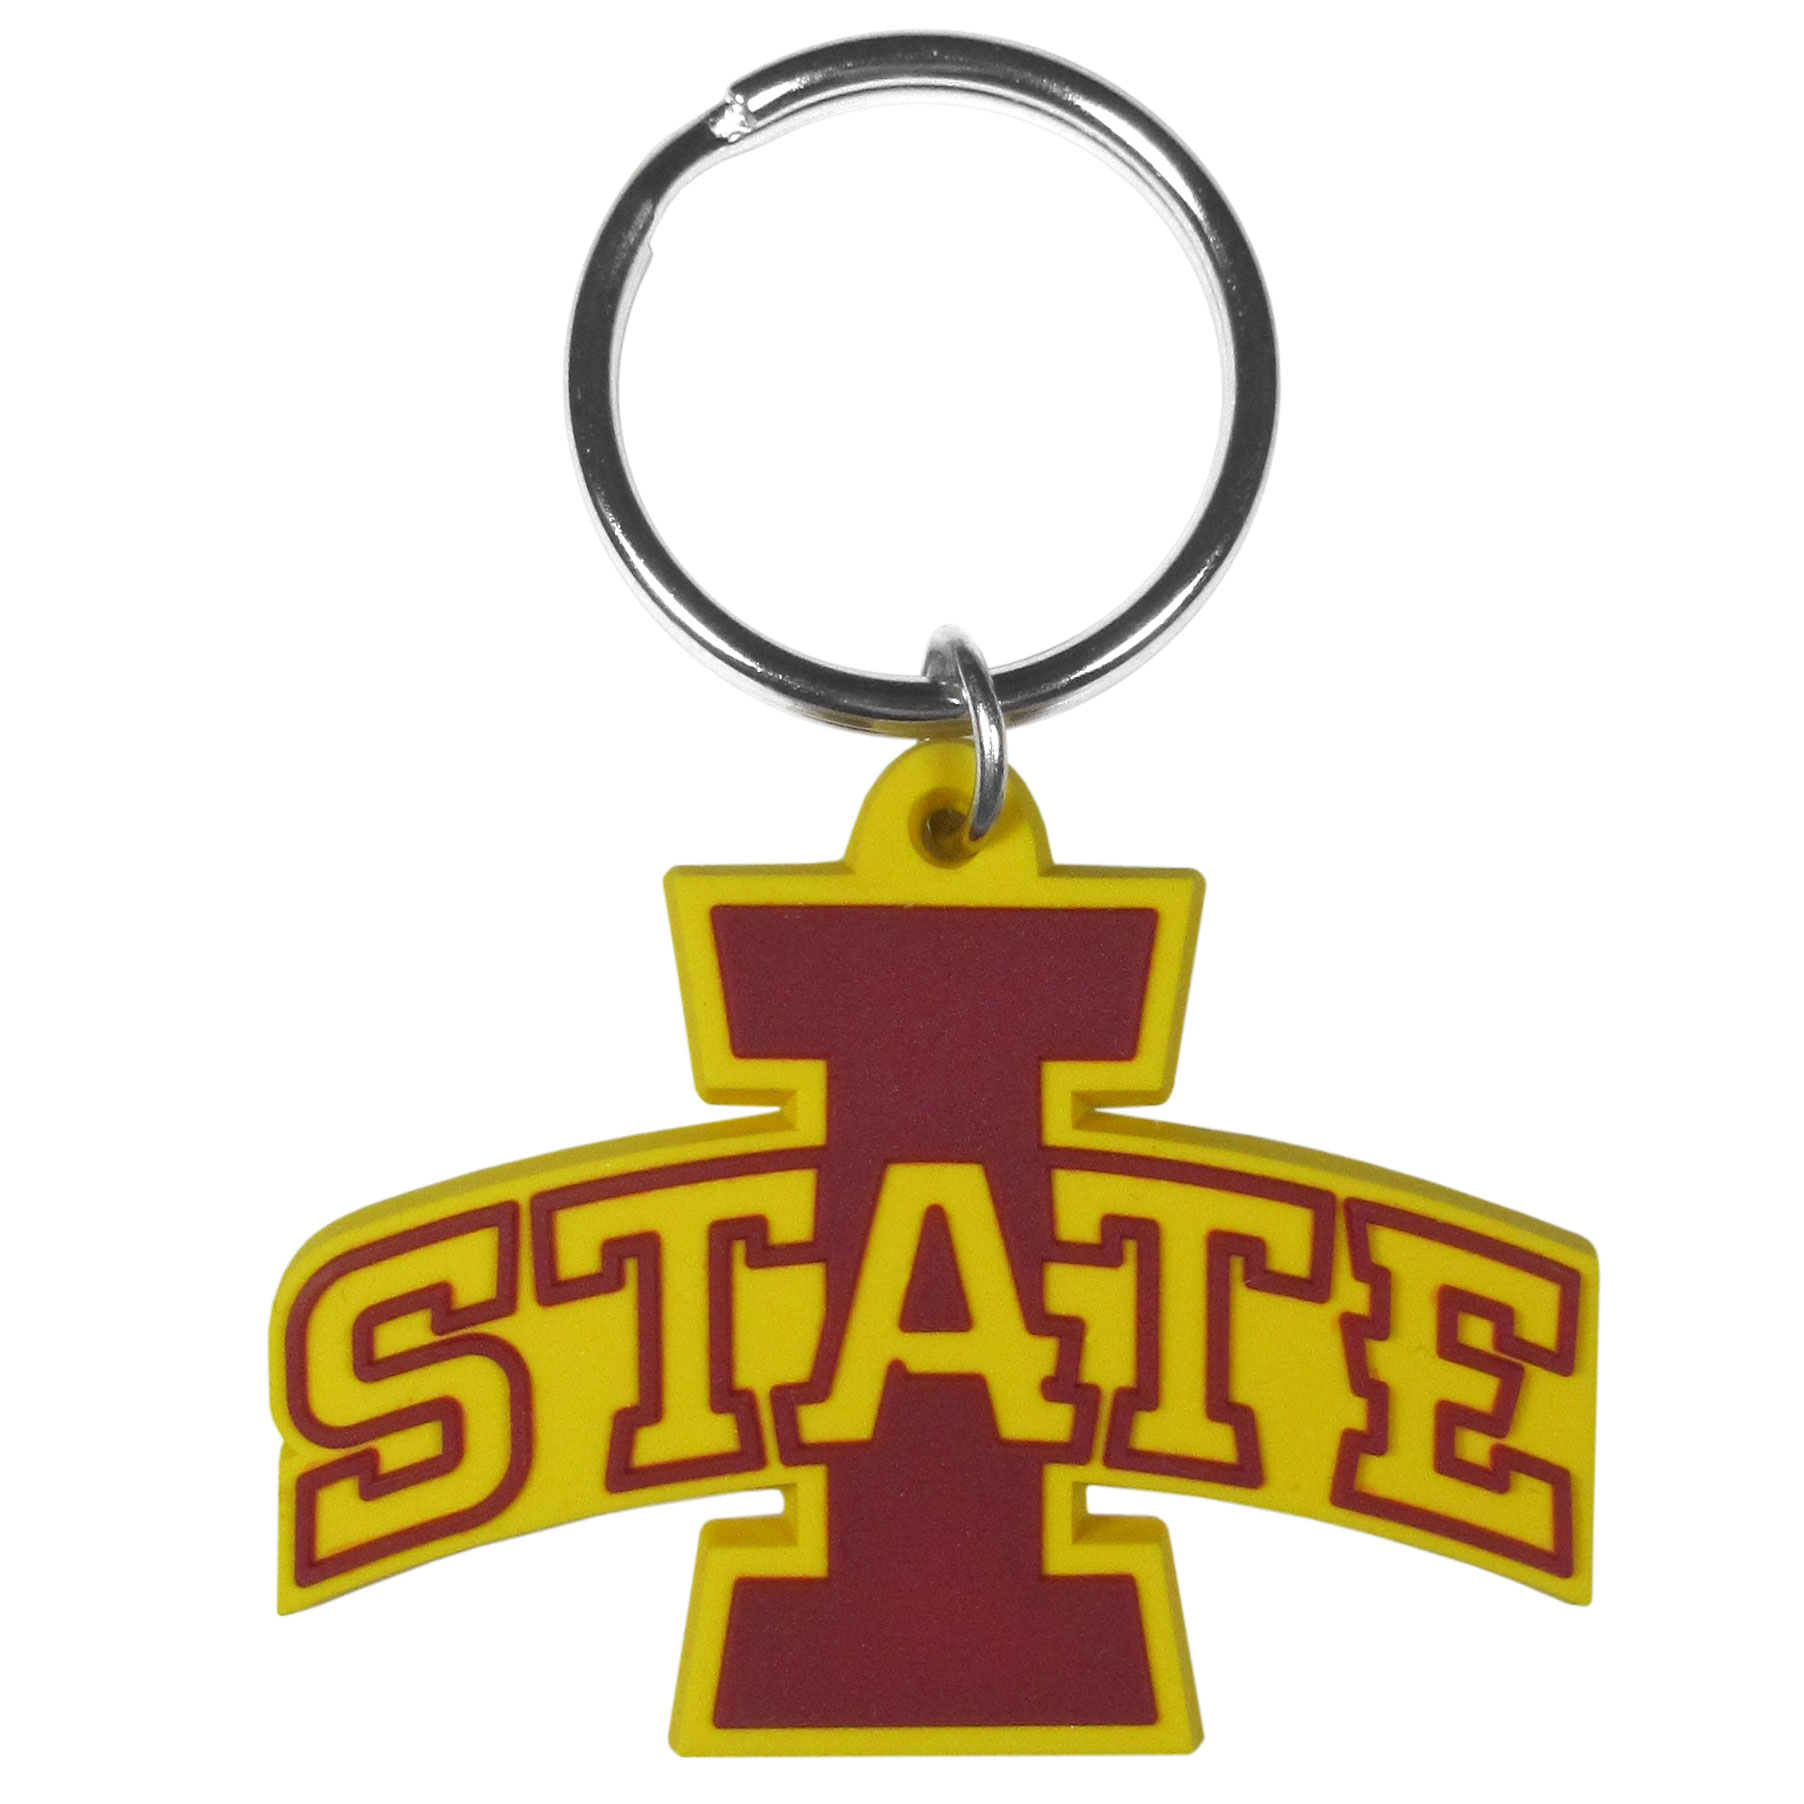 Iowa St. Cyclones Flex Key Chain - Our fun, flexible Iowa St. Cyclones key chains are made of a rubbery material that is layered to create a bright, textured logo.